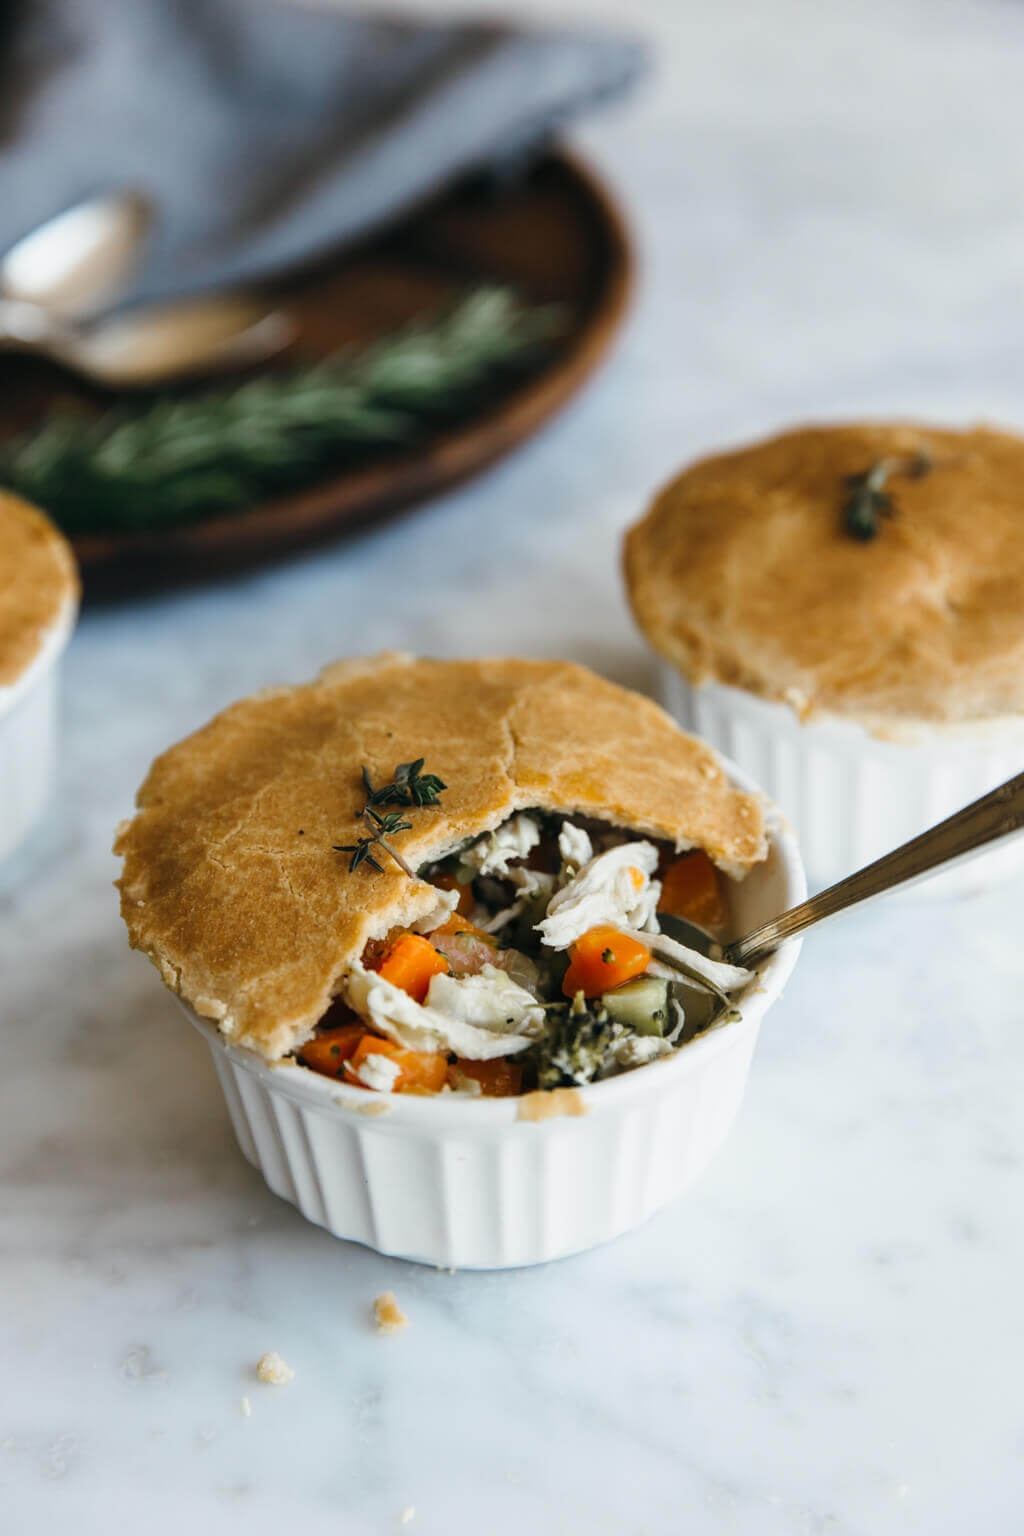 Paleo chicken pot pies that are mini in size and loaded with veggies, shredded chicken and a creamy, dairy-free filling.  They're gluten-free, grain-free, dairy-free and paleo - though you'd never know it.